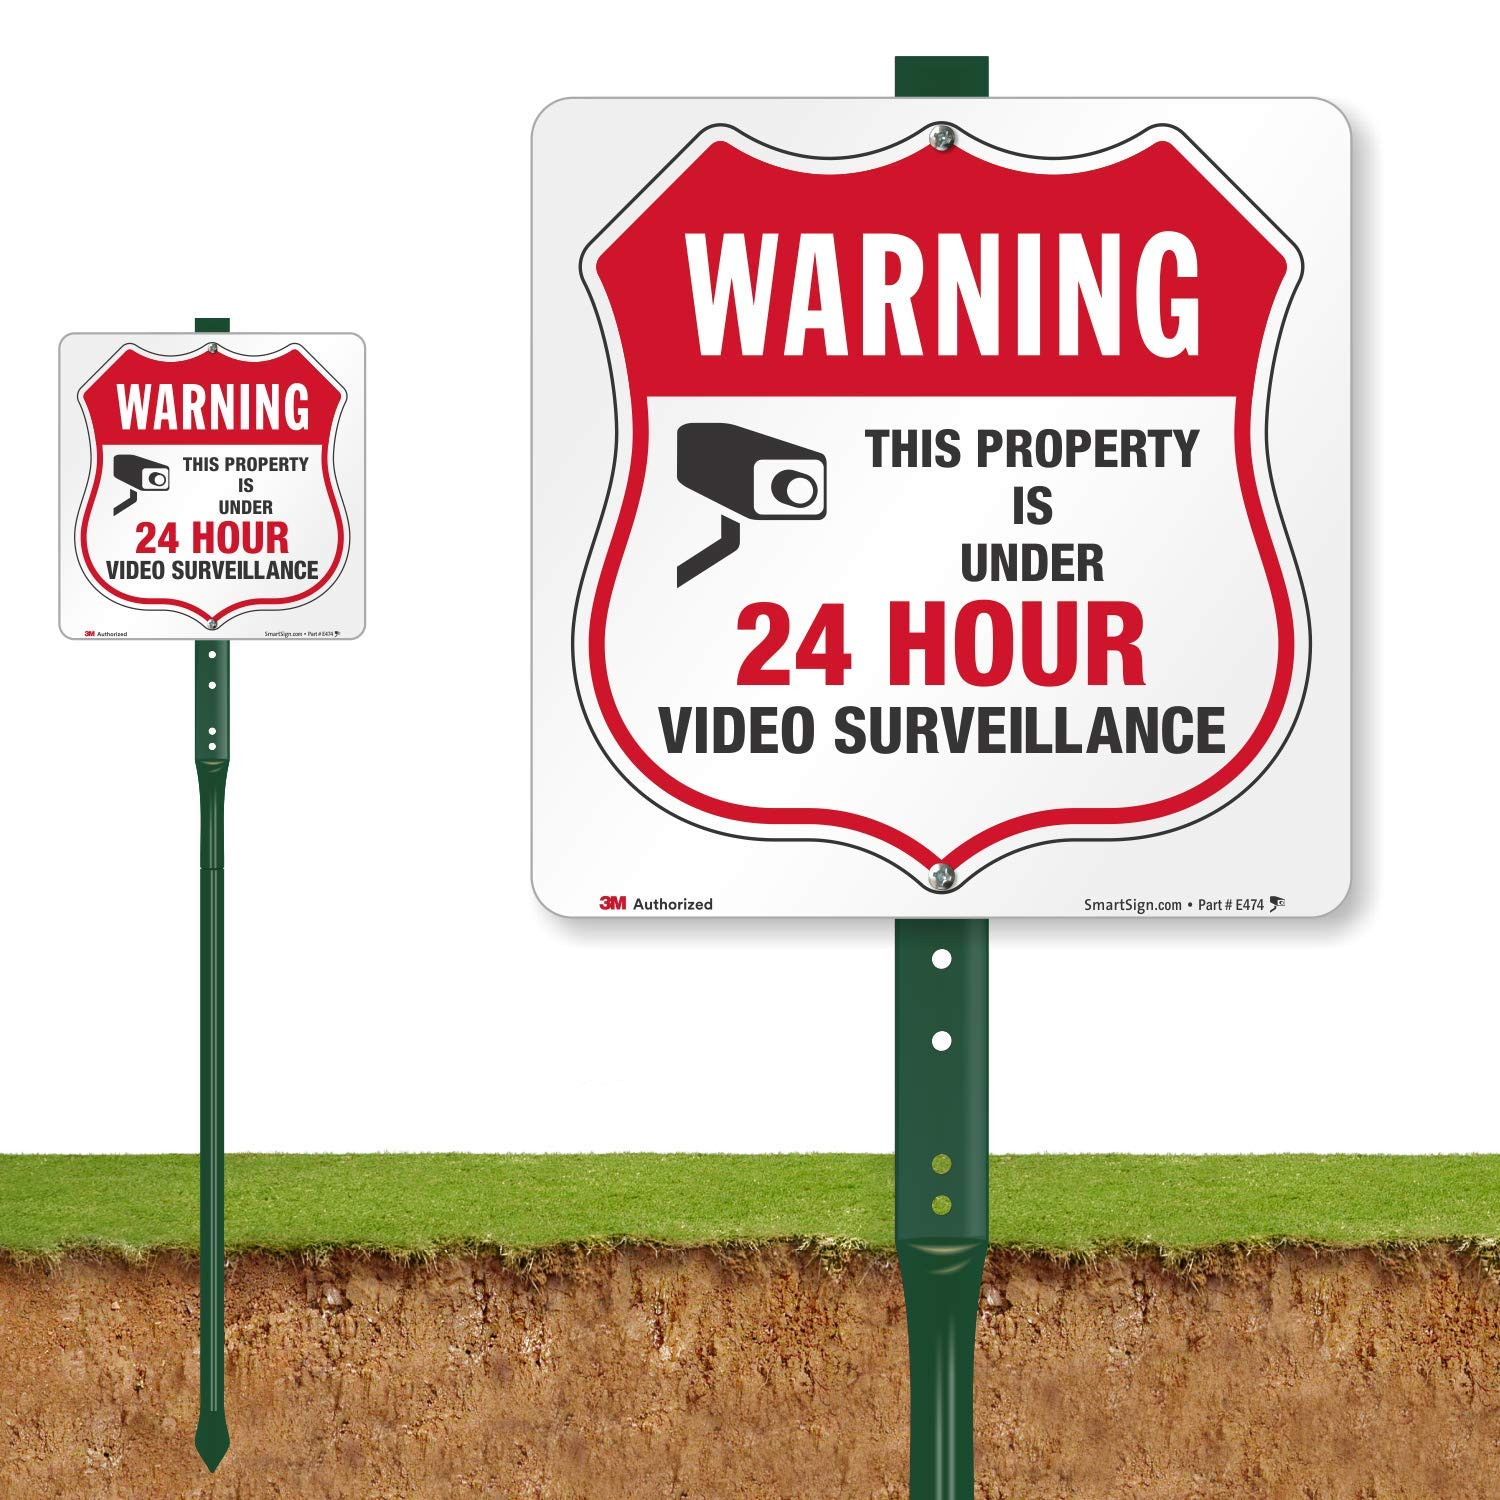 SmartSign ''Warning - This Property is Under 24 Hour Video Surveillance'' Sign for Lawn | 10'' Square 3M Engineer Grade Reflective Aluminum Sign with 3' Stake [New] by SmartSign